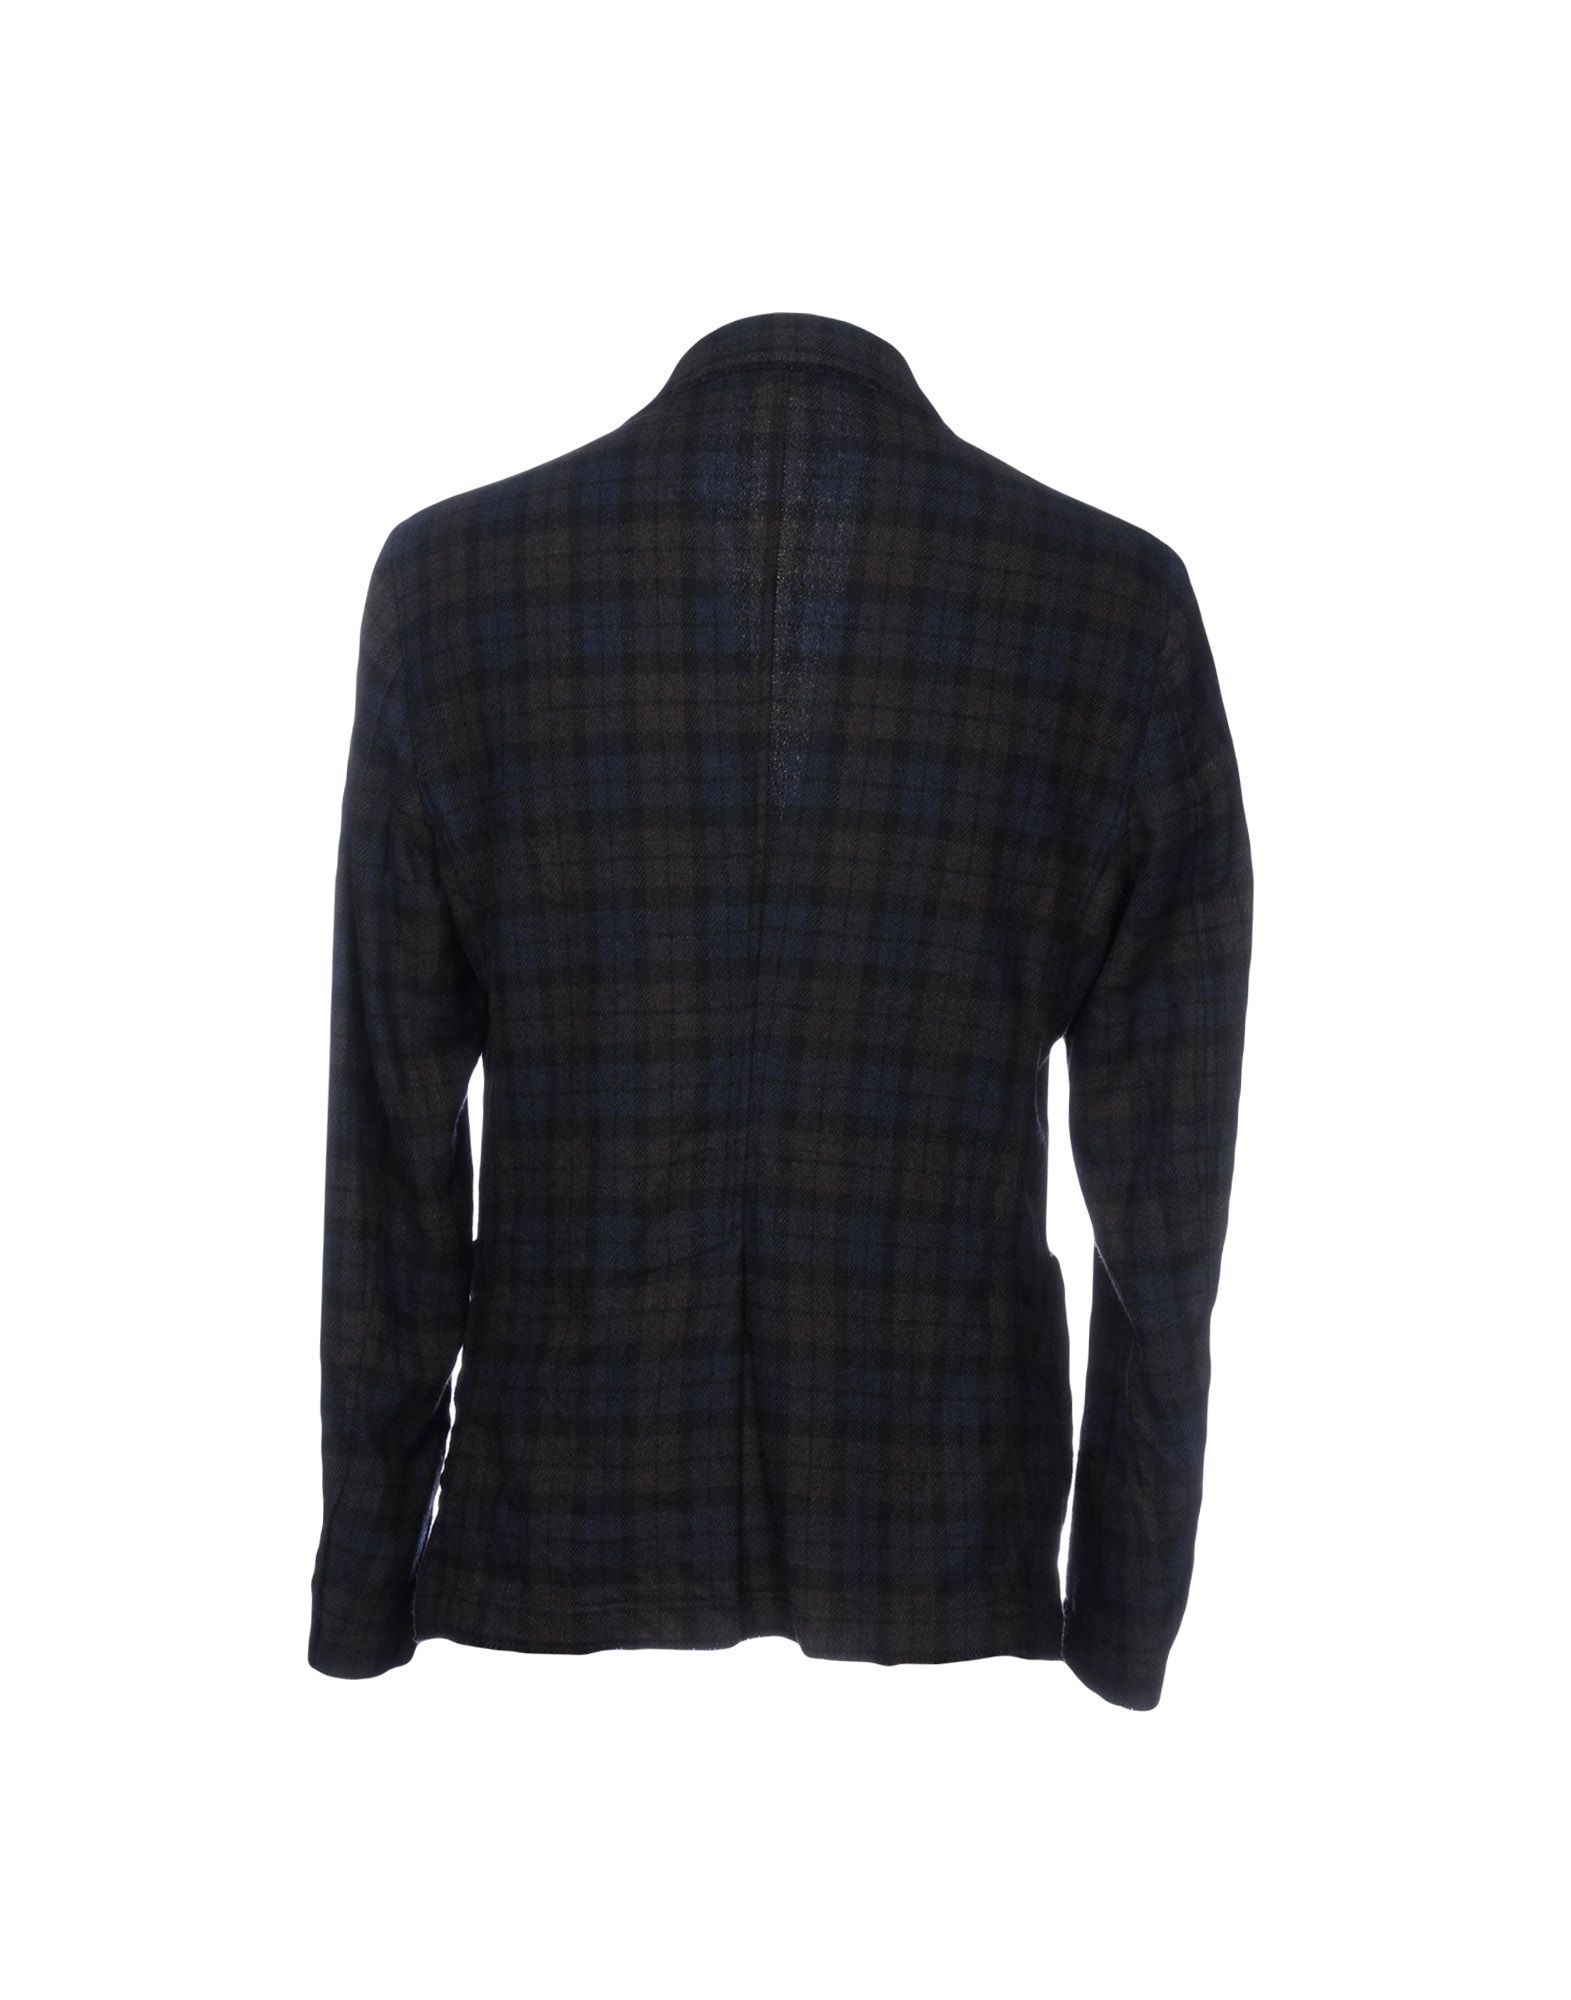 SUITS AND JACKETS Barena Dark blue Man Wool